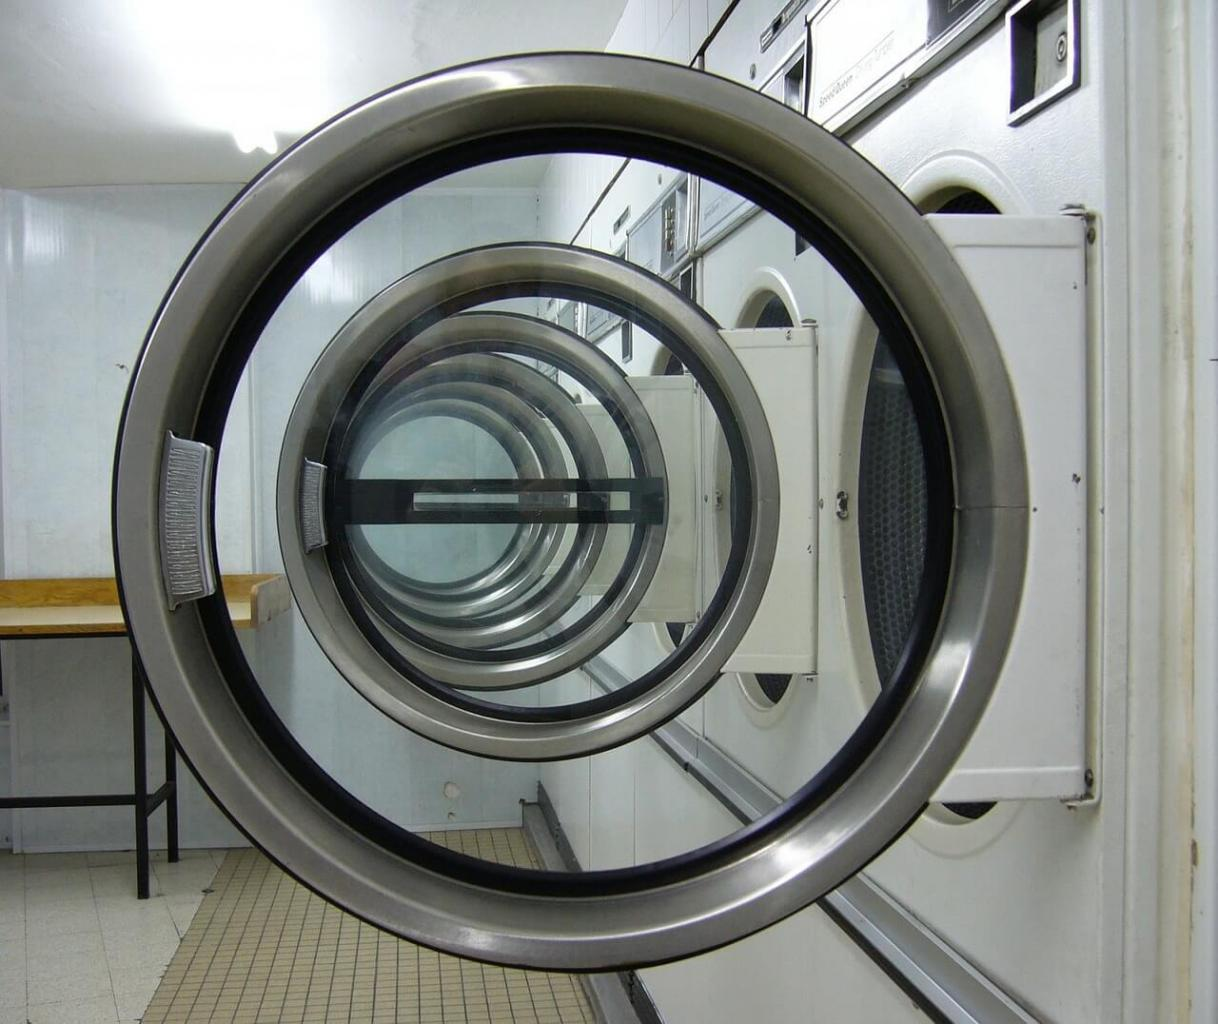 laundry room safety should be a top priority!